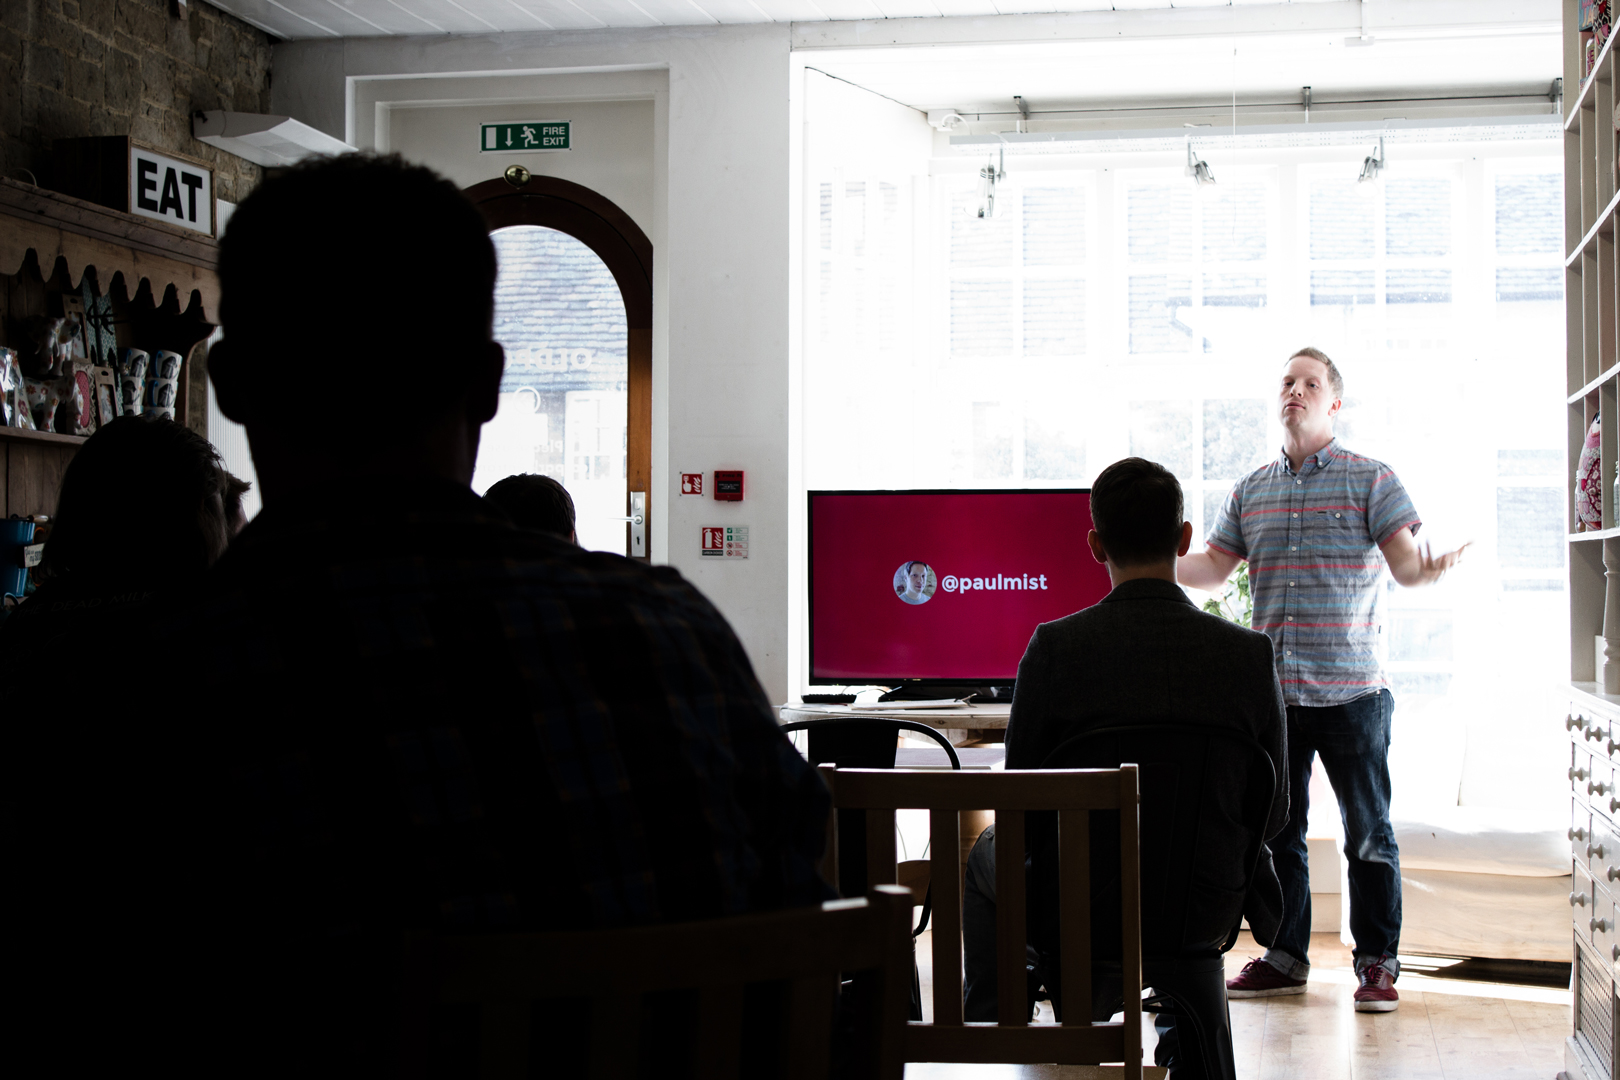 One of the Watb team giving a talk at a 418:Conf Meet Up